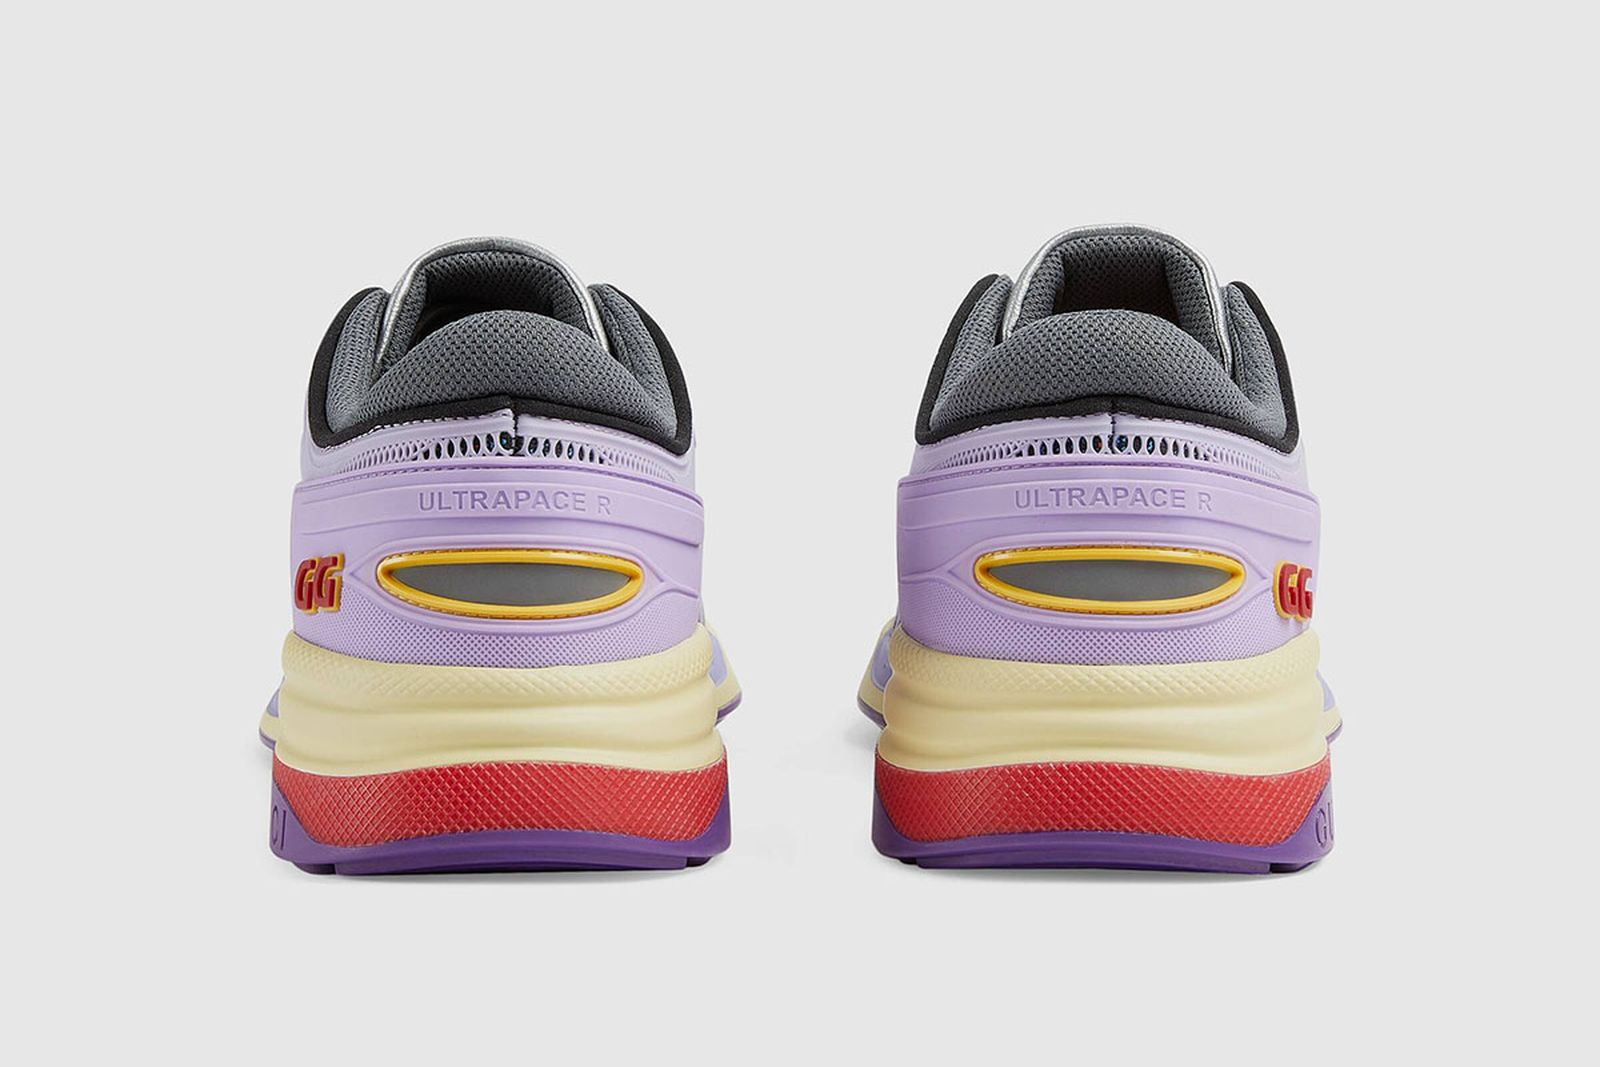 gucci-ultrapace-r-lilac-yellow-release-date-price-05